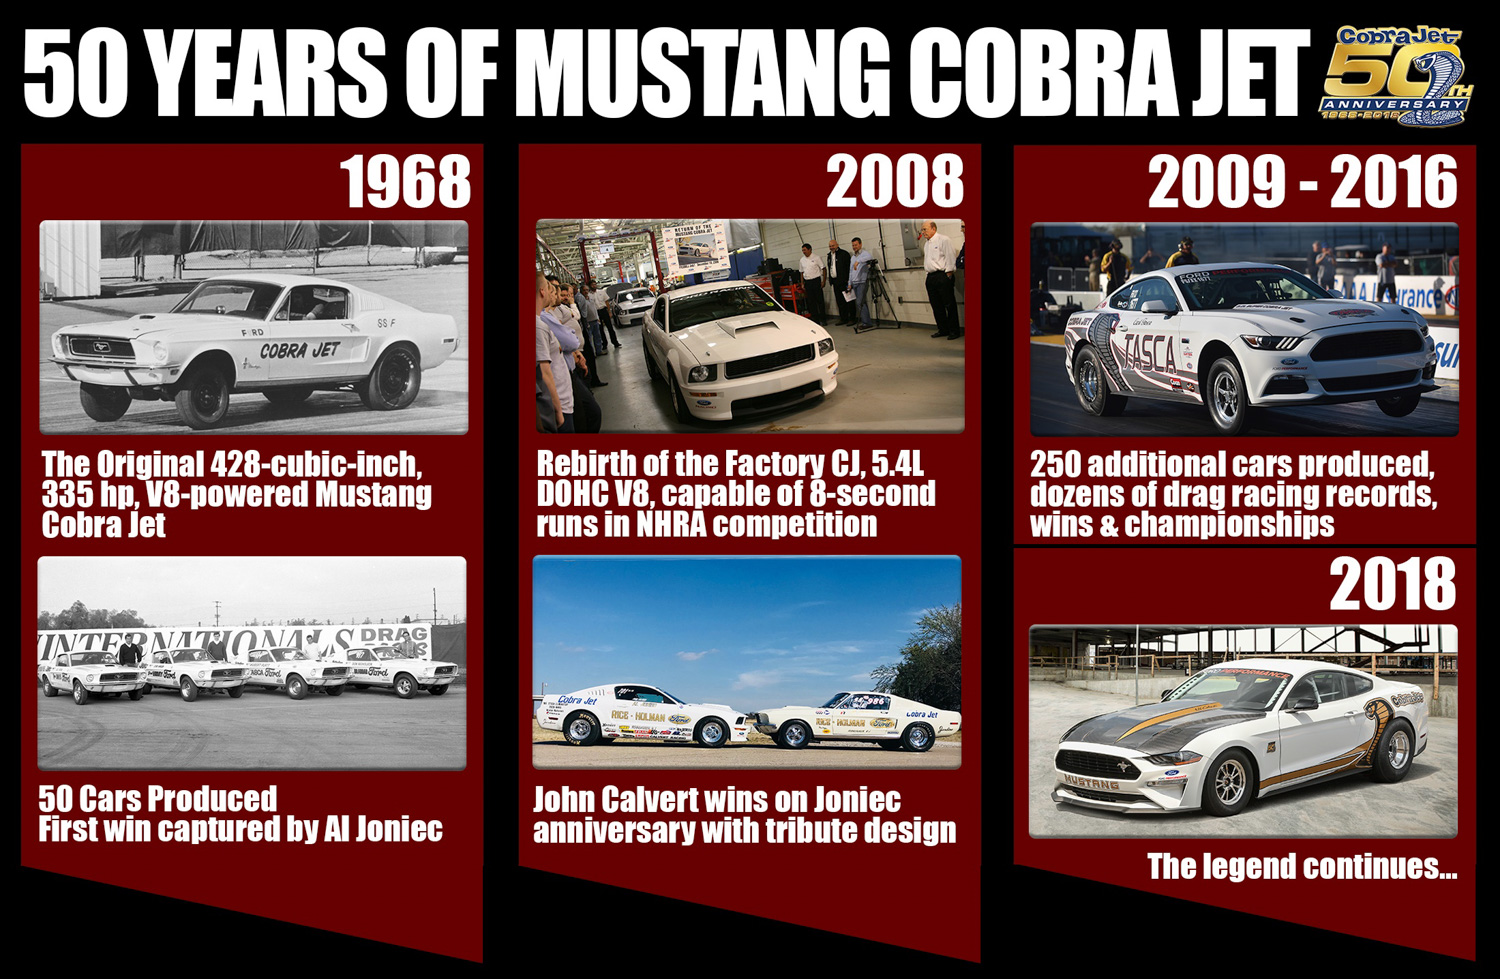 2018 Ford Mustang Cobra Jet history